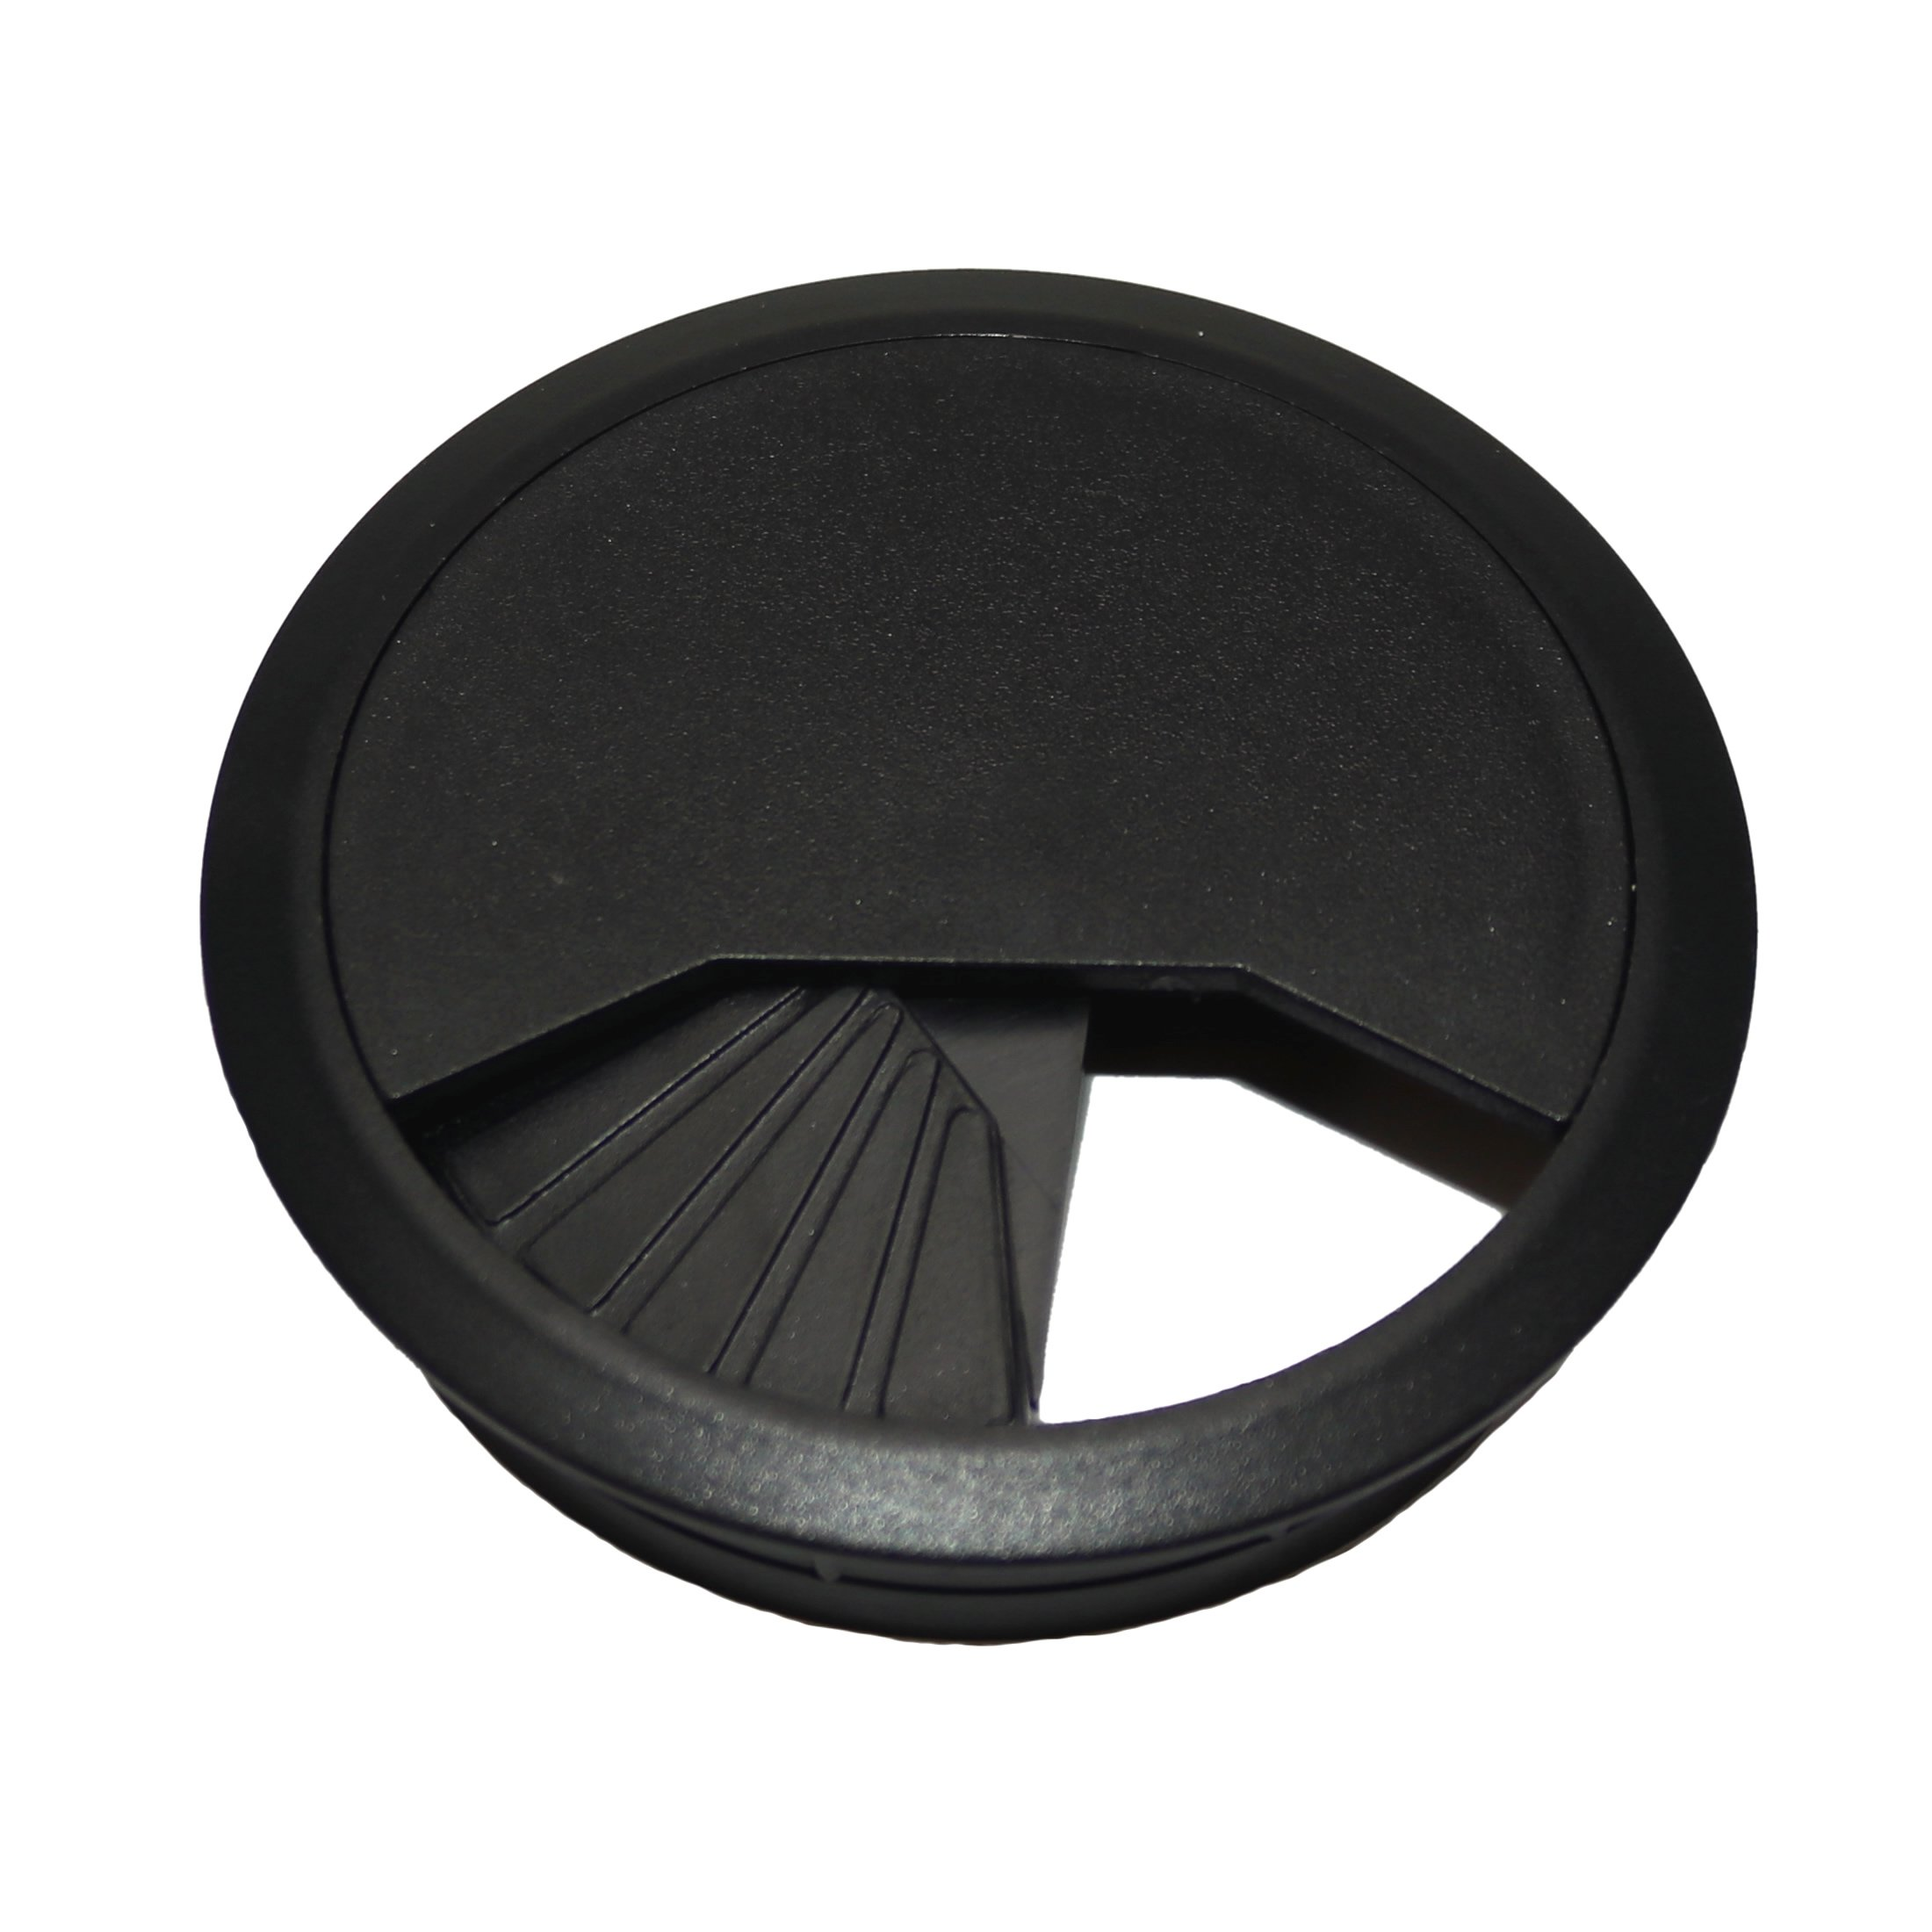 TCH Hardware 5 Pack Desk Cable Grommet 3 1/8'' Black Plastic - Office Computer Table Wire Cover by TCH (Image #3)